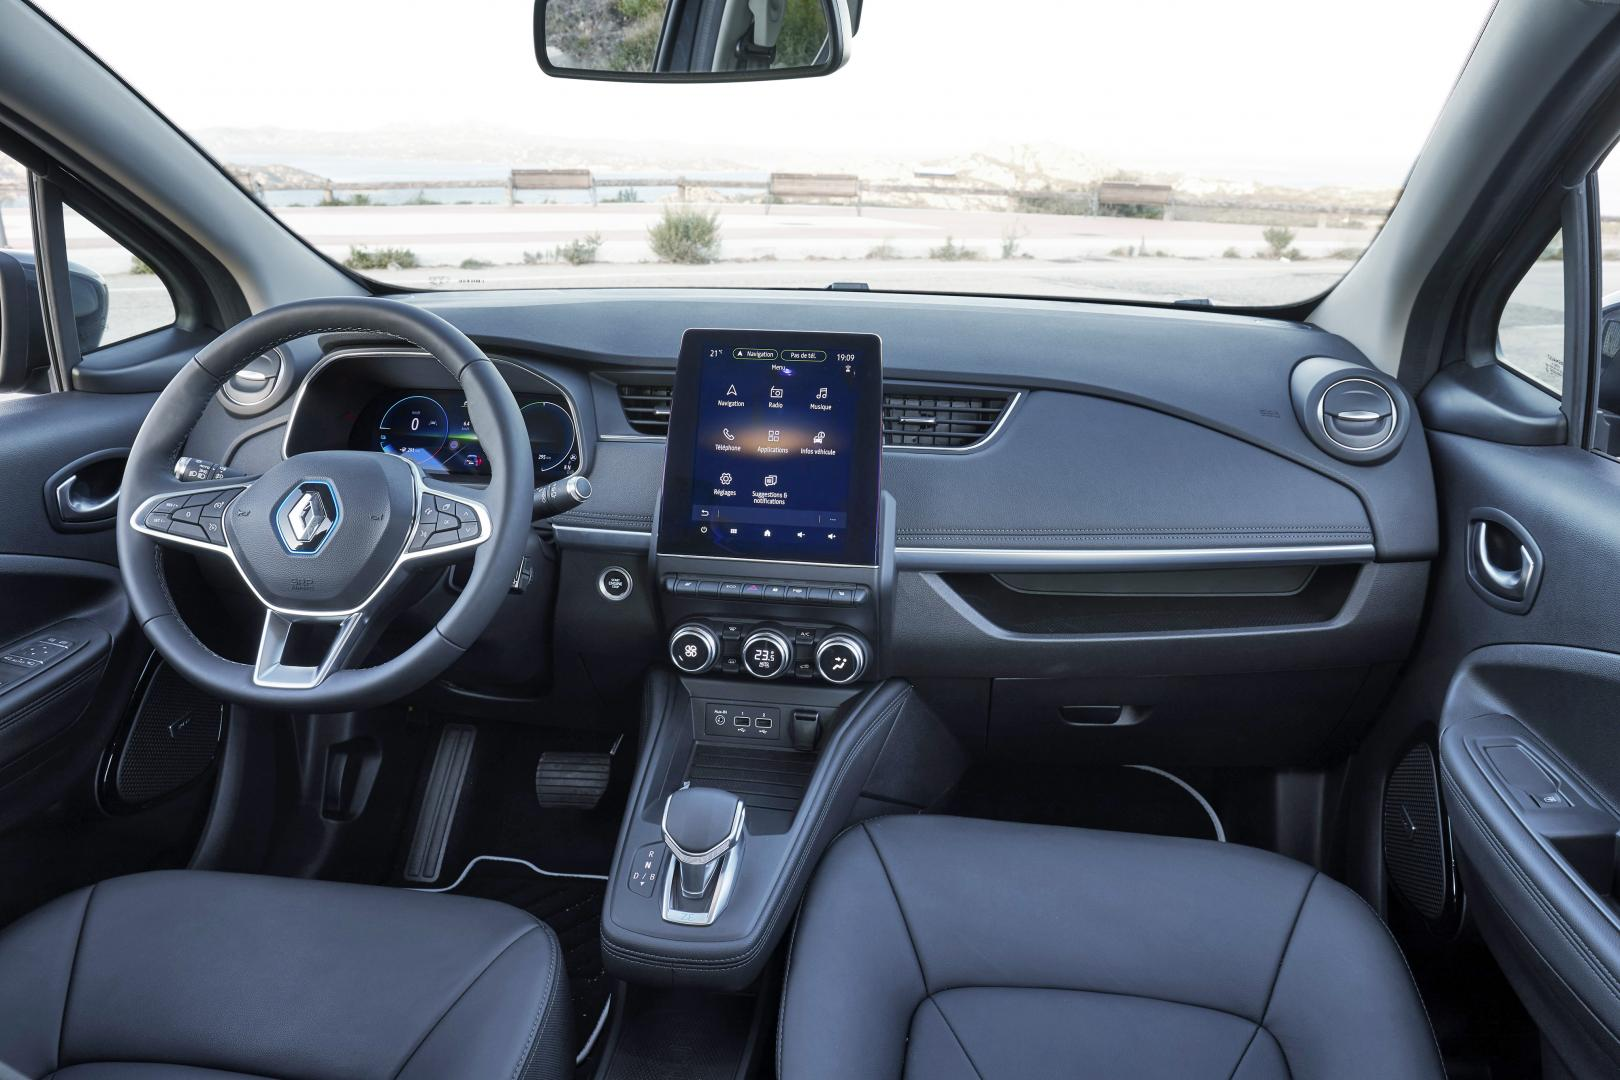 Renault Zoe interieur dashboard 2019